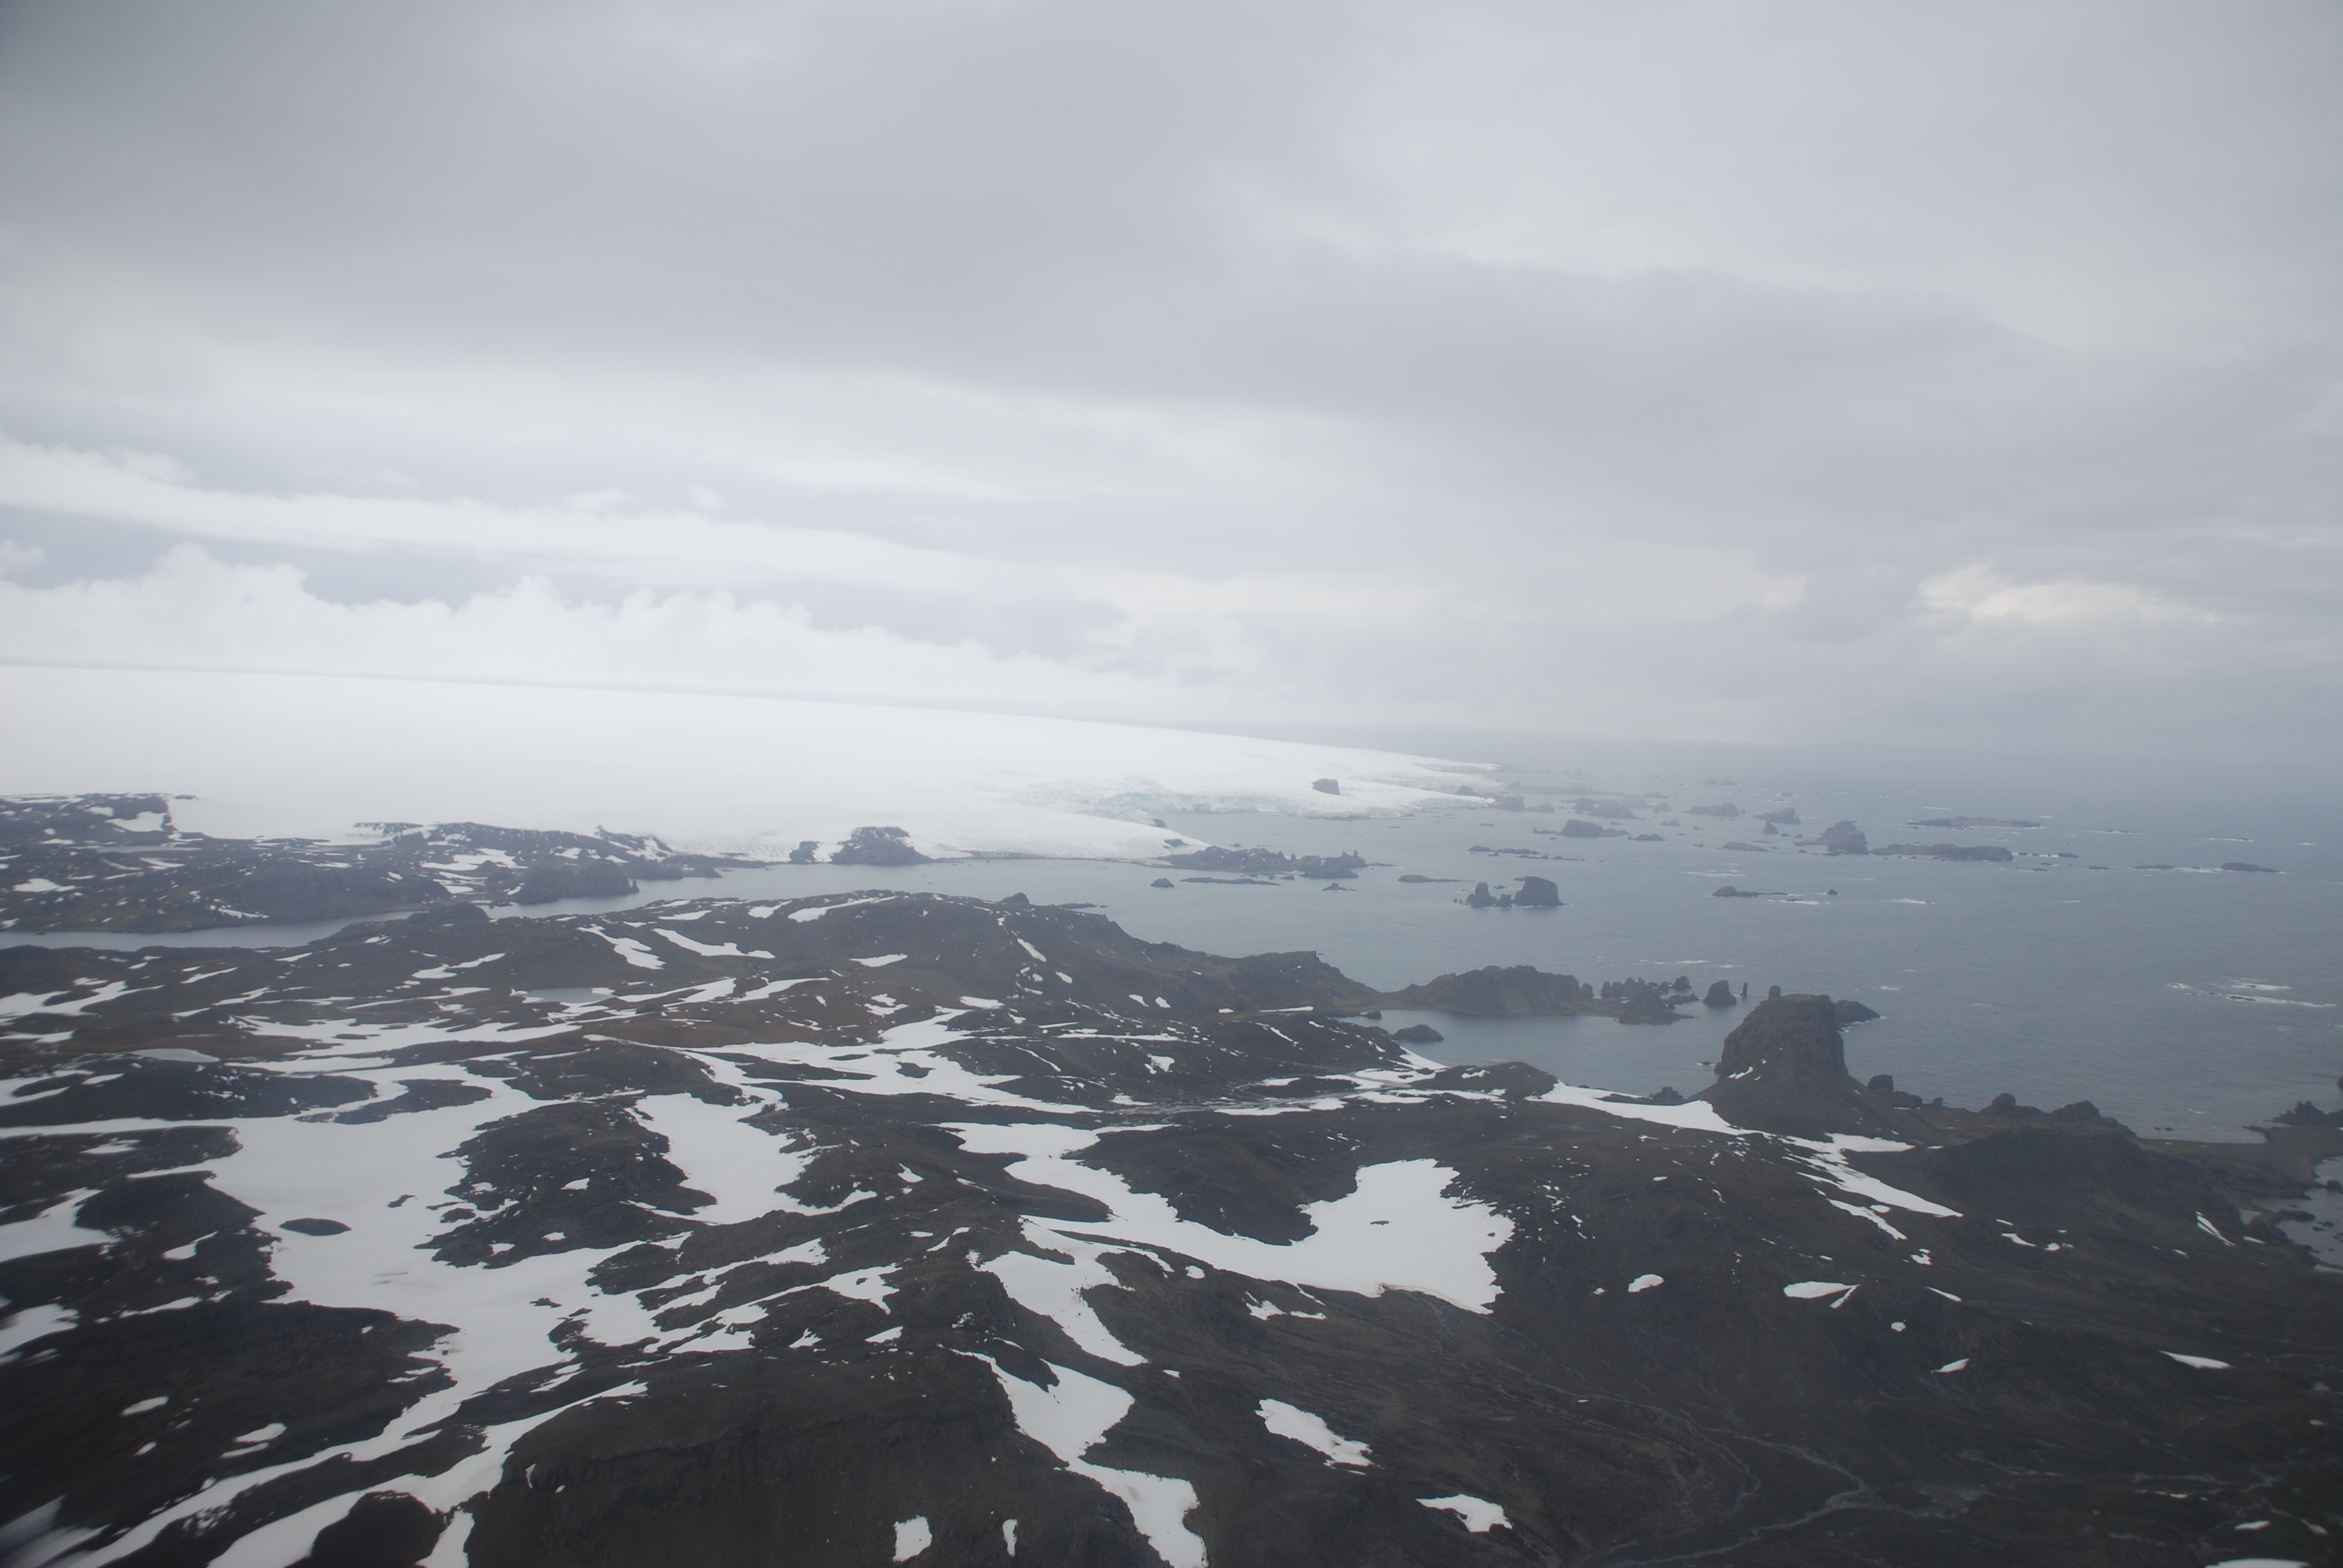 View of Antarctica from plane